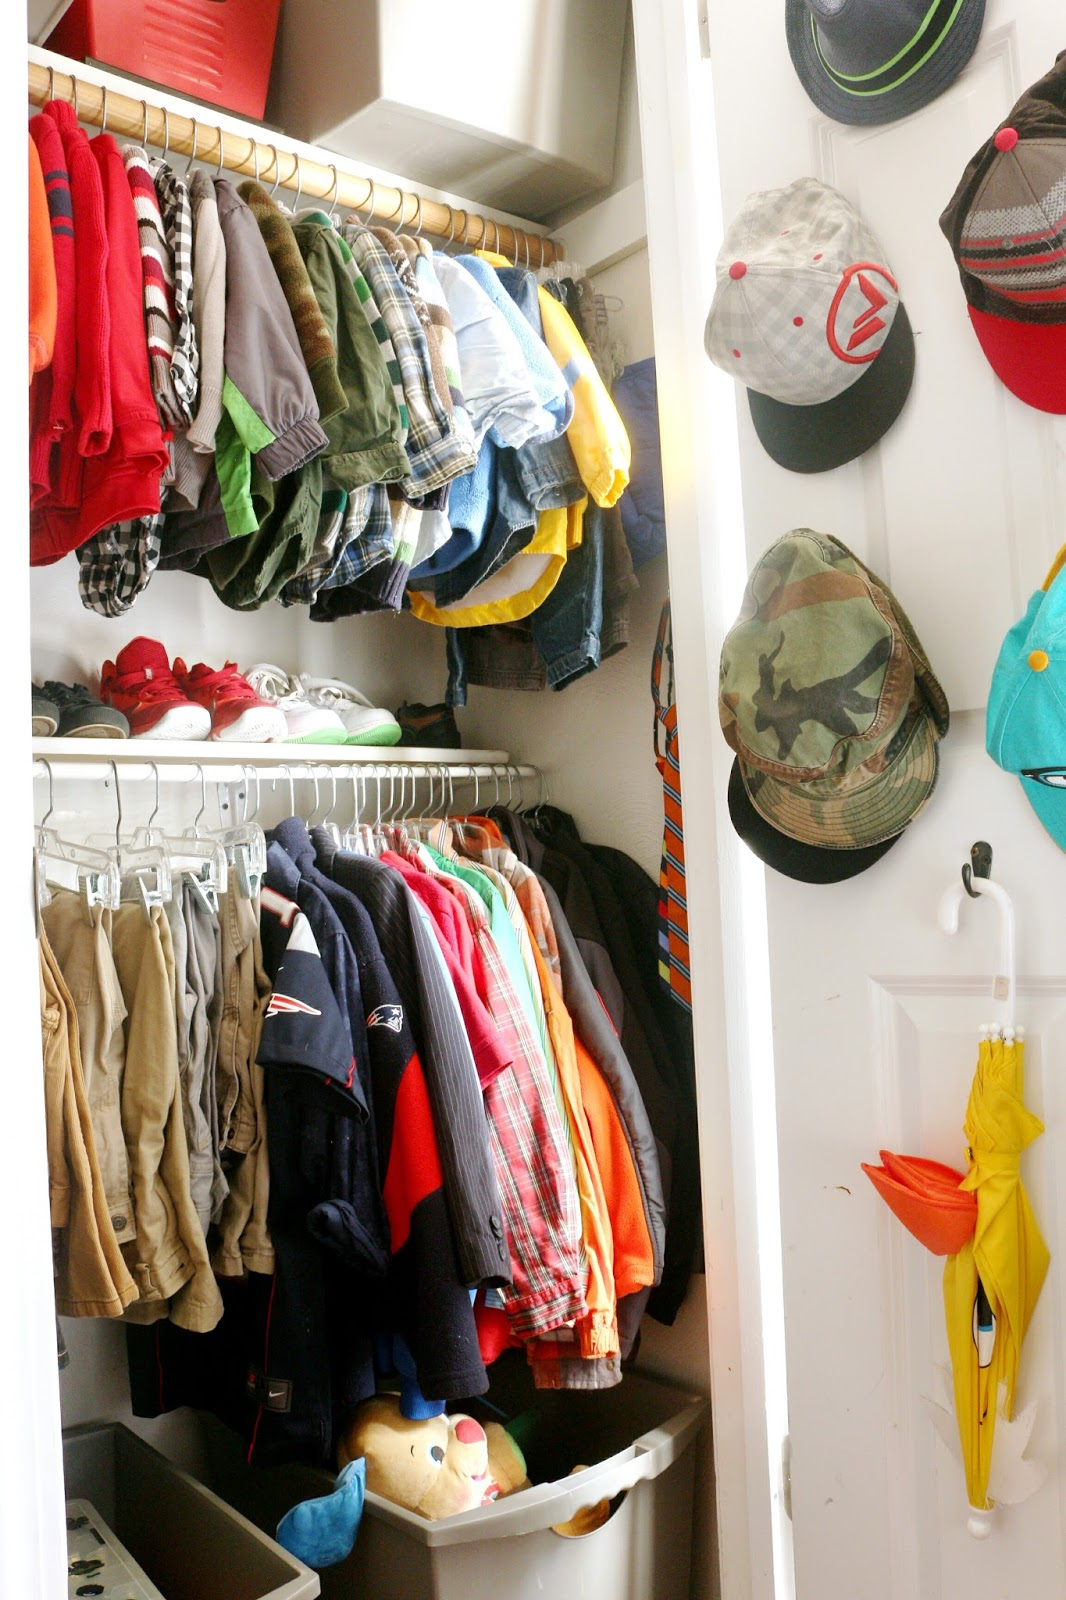 shared kids' closet organization